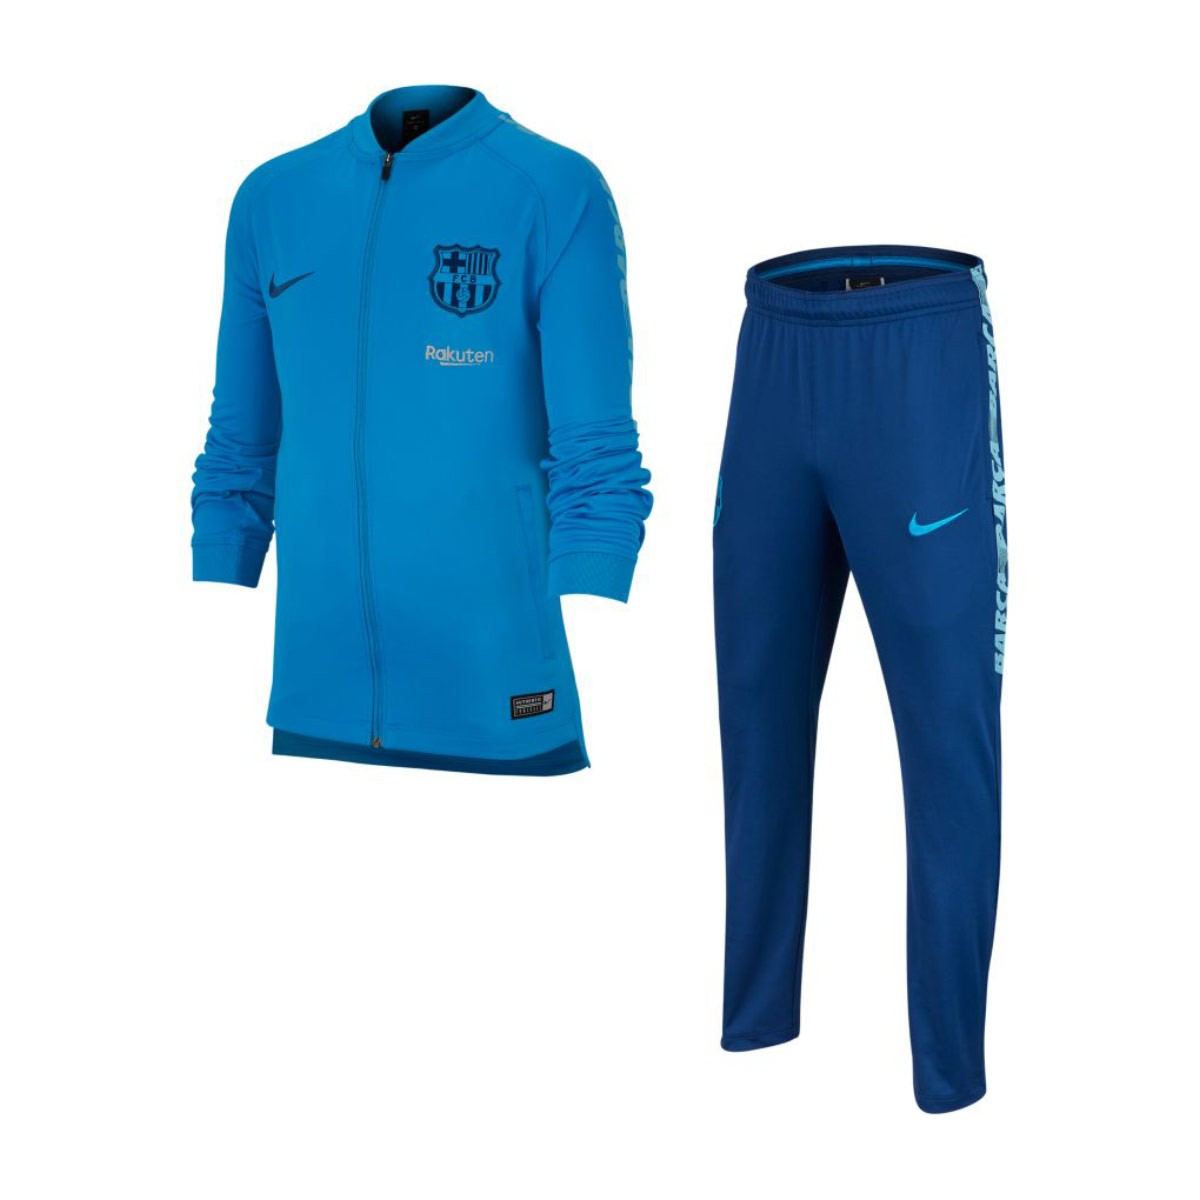 e16a11a3d47c8f Tuta Nike Dry FC Barcellona Squad 2018-2019 Junior Equator blue-Vivil  sky-Coastal blue - Negozio di calcio Fútbol Emotion